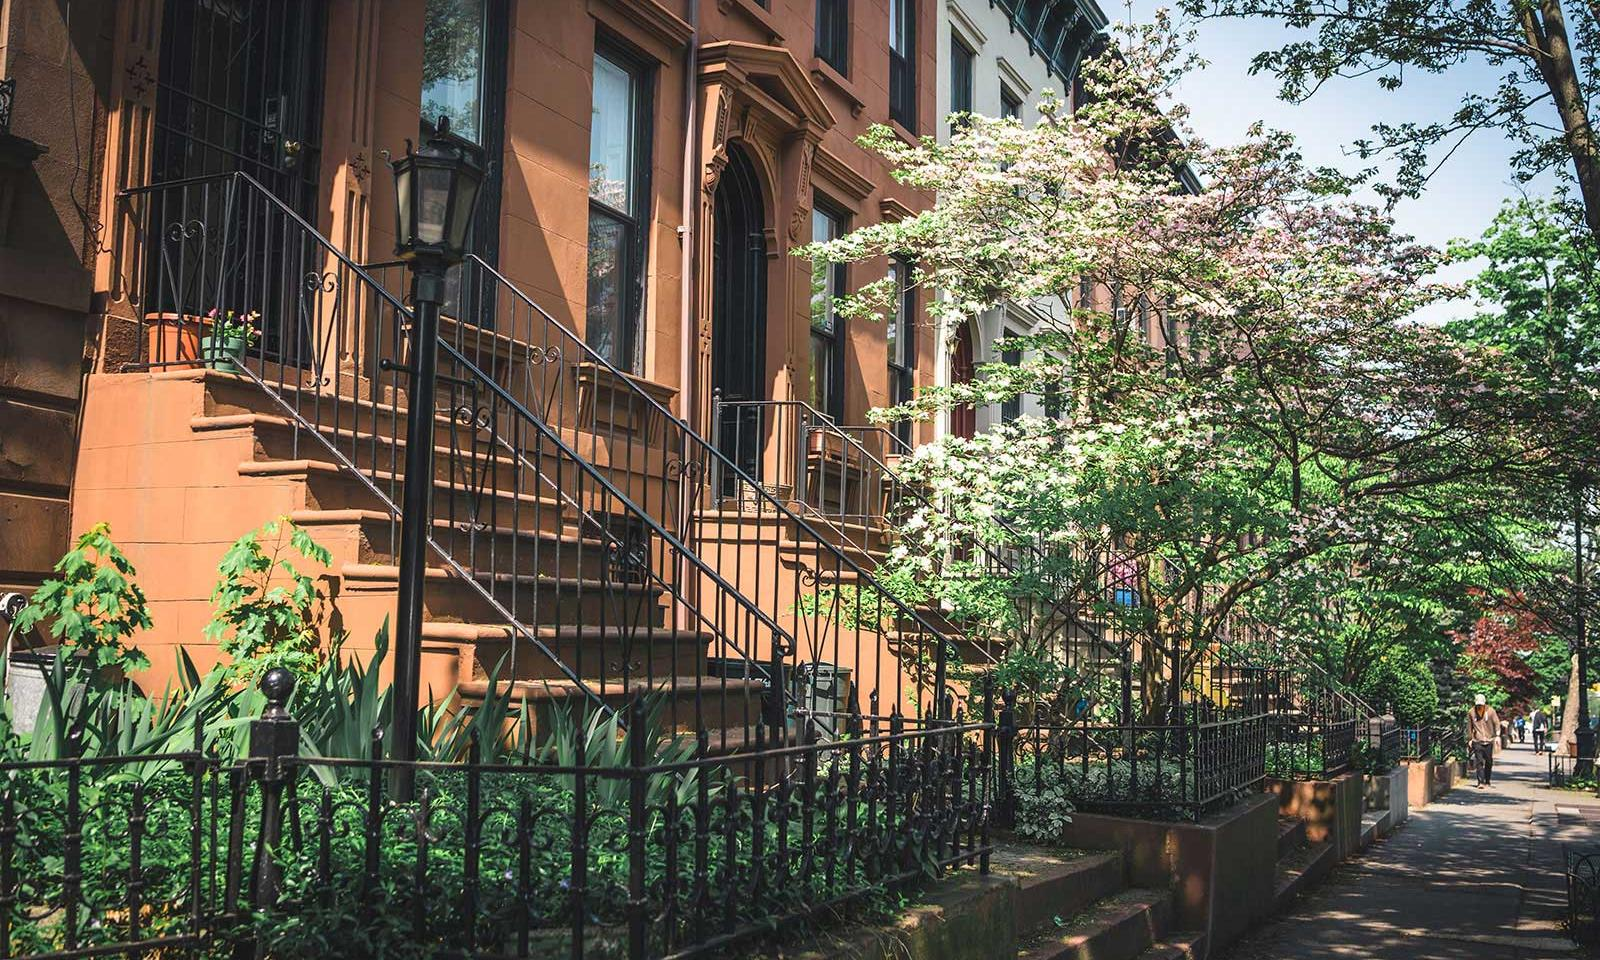 cfa1db344 Home › Insider Guides › Things To Do in Park Slope